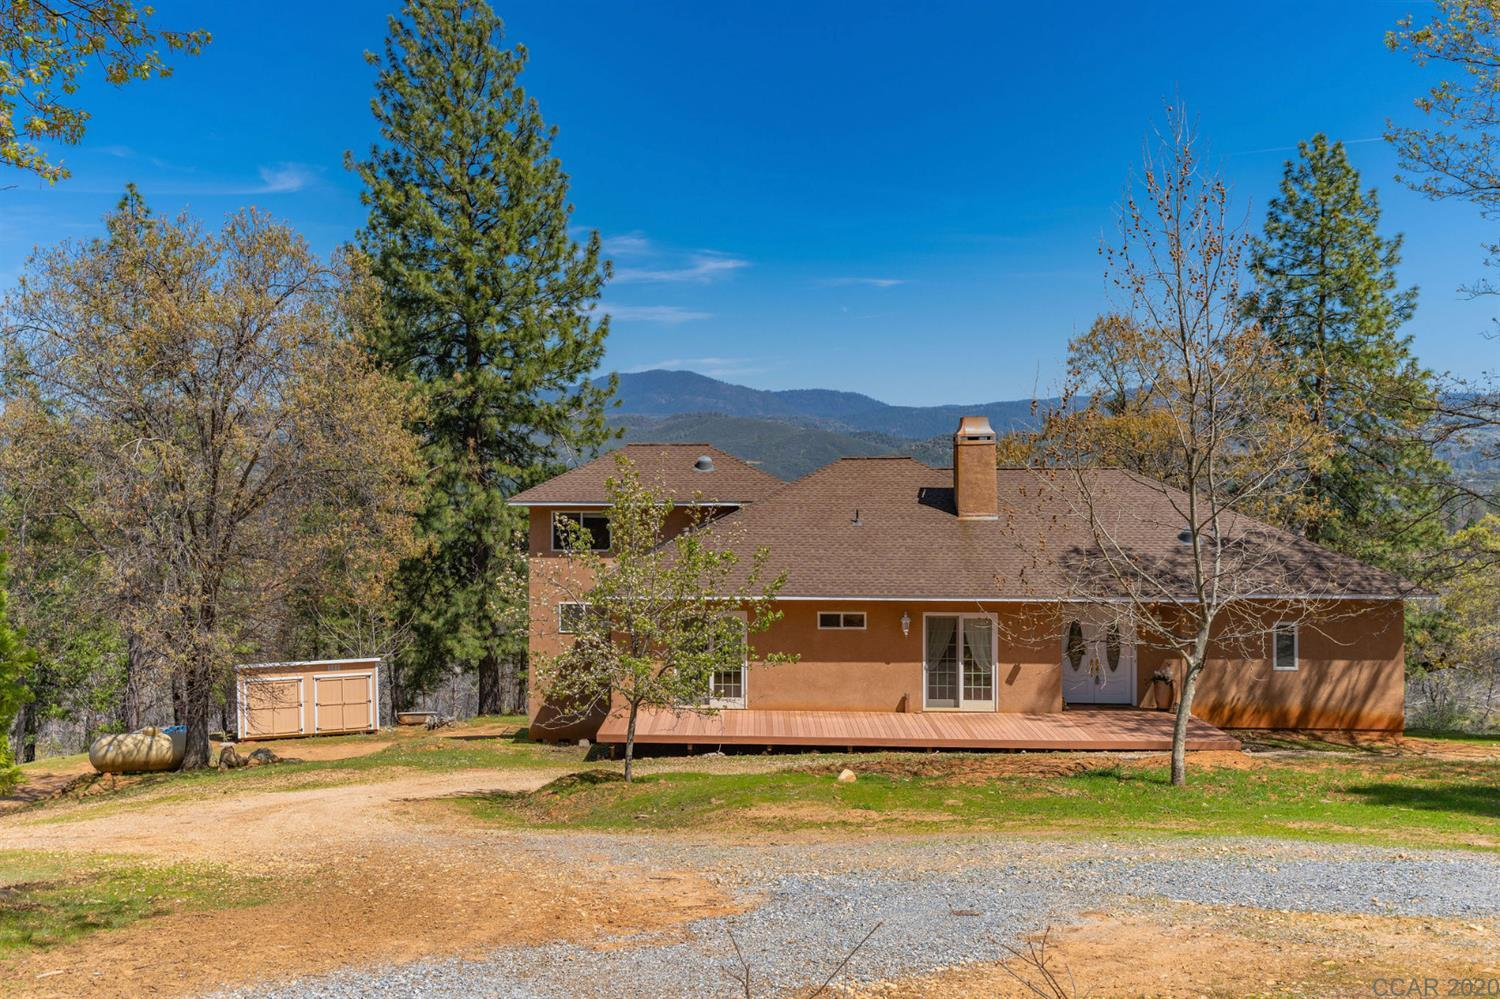 Photo of 6103 South Railroad Flat Rd, Mountain Ranch, CA 95246